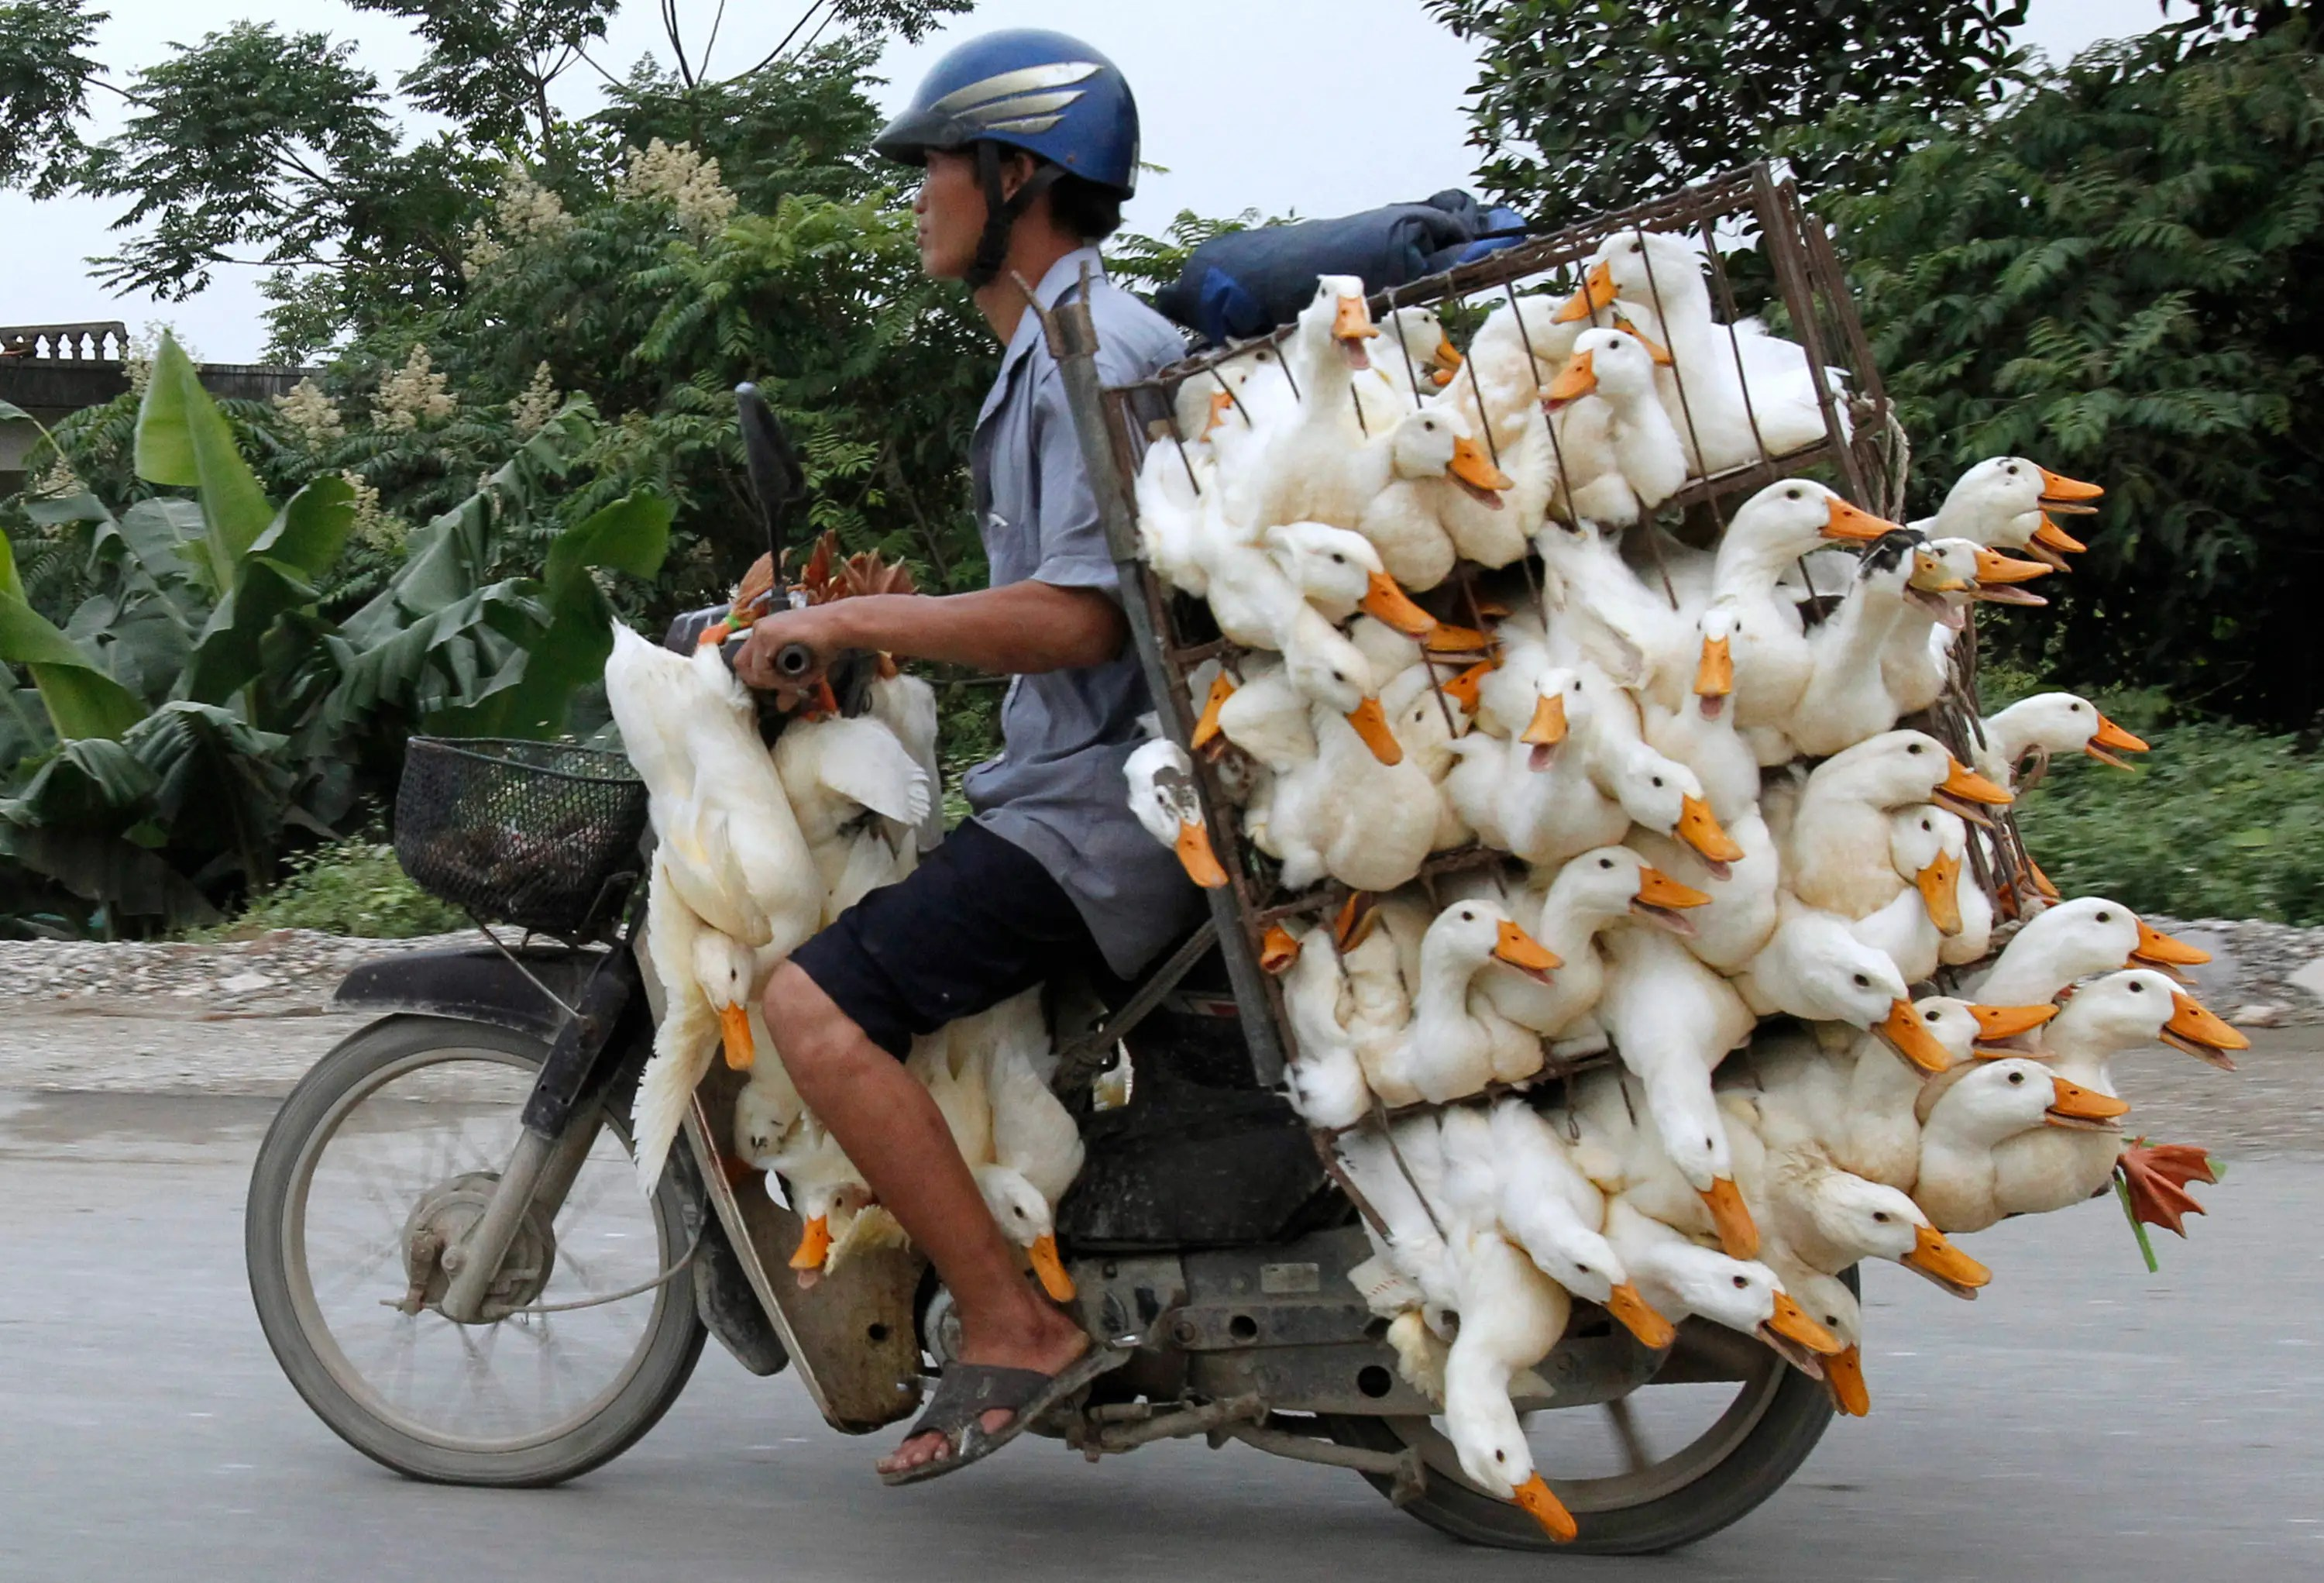 For transporting a lot of ducks, a motorcycle works.